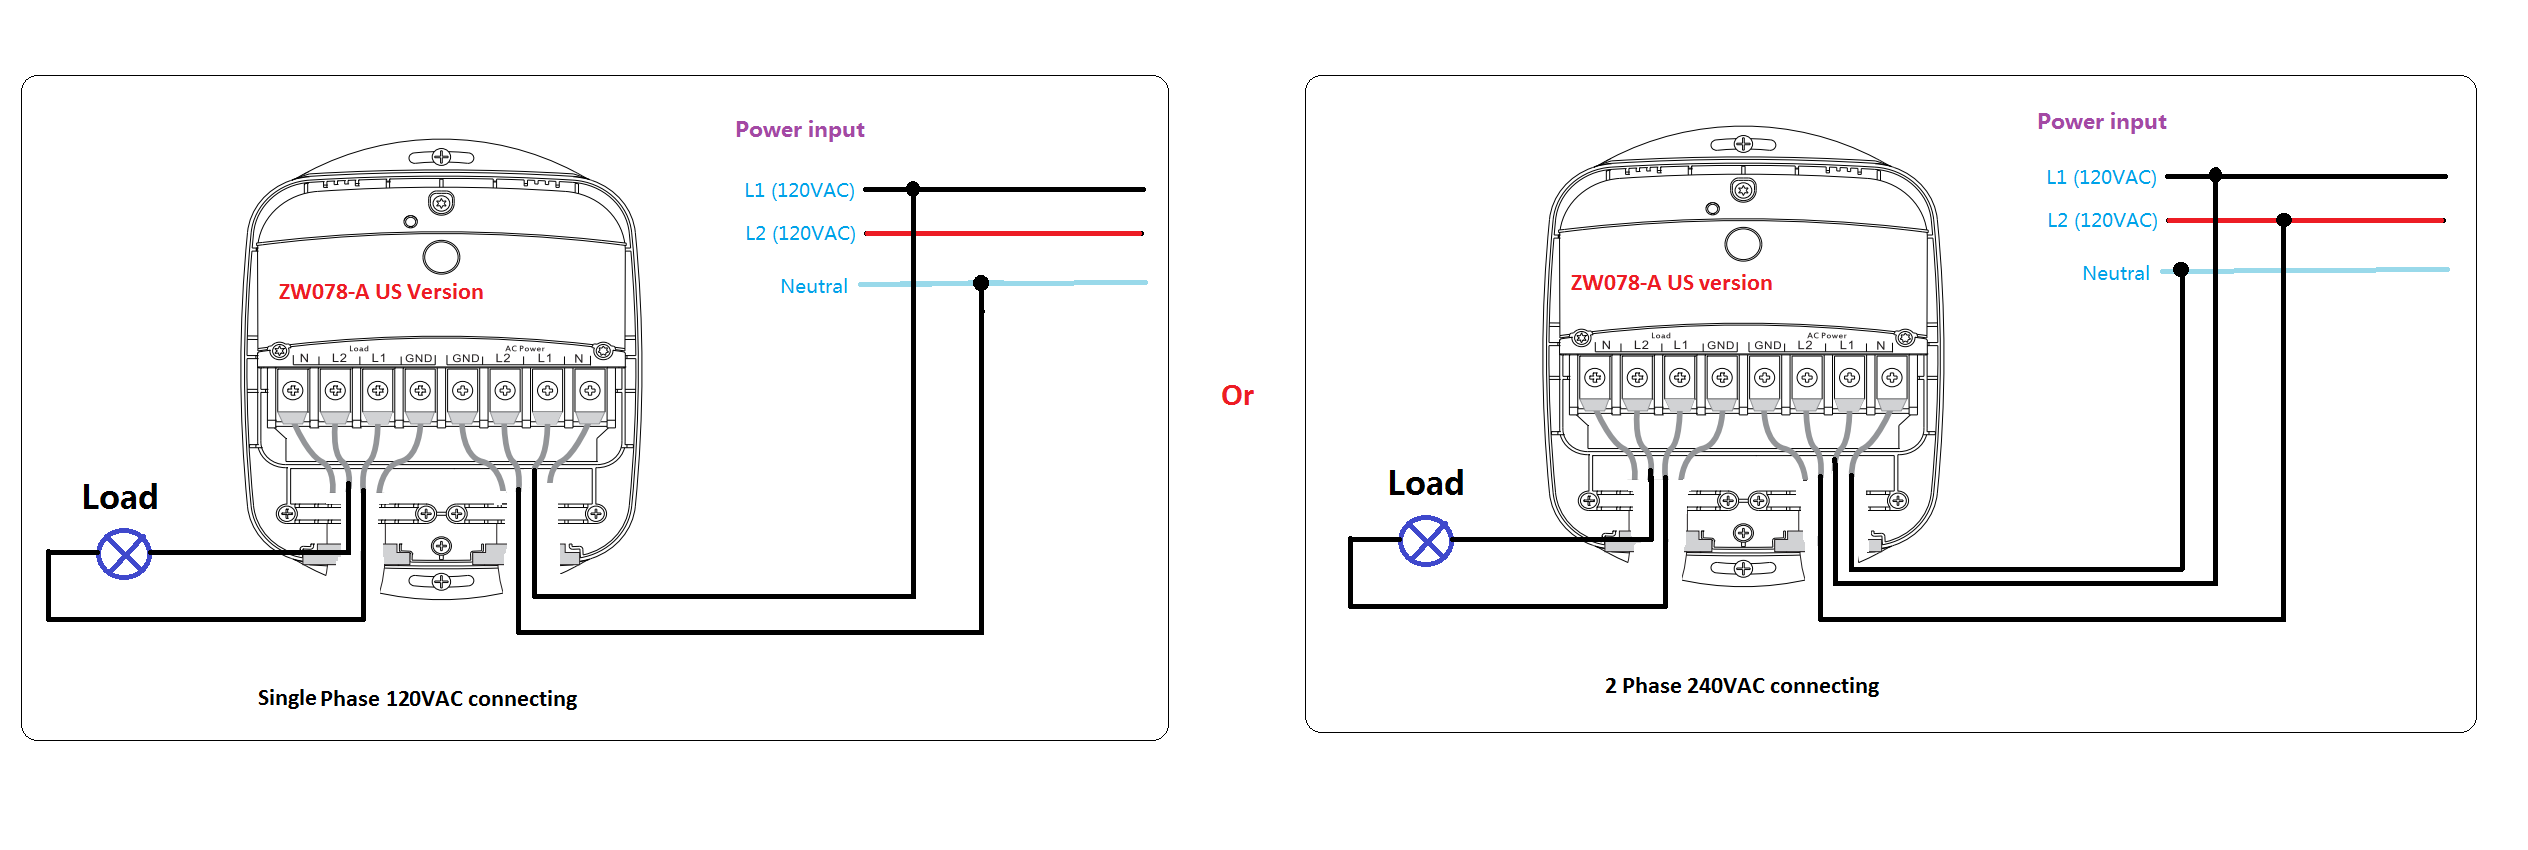 heavy duty smart switch gen5 wiring diagrams aeotec by aeon labs diagram 1 wiring hdss on a 1 phase 120vac connection diagram 2 wiring hdss on a 2 phase 240vac connection